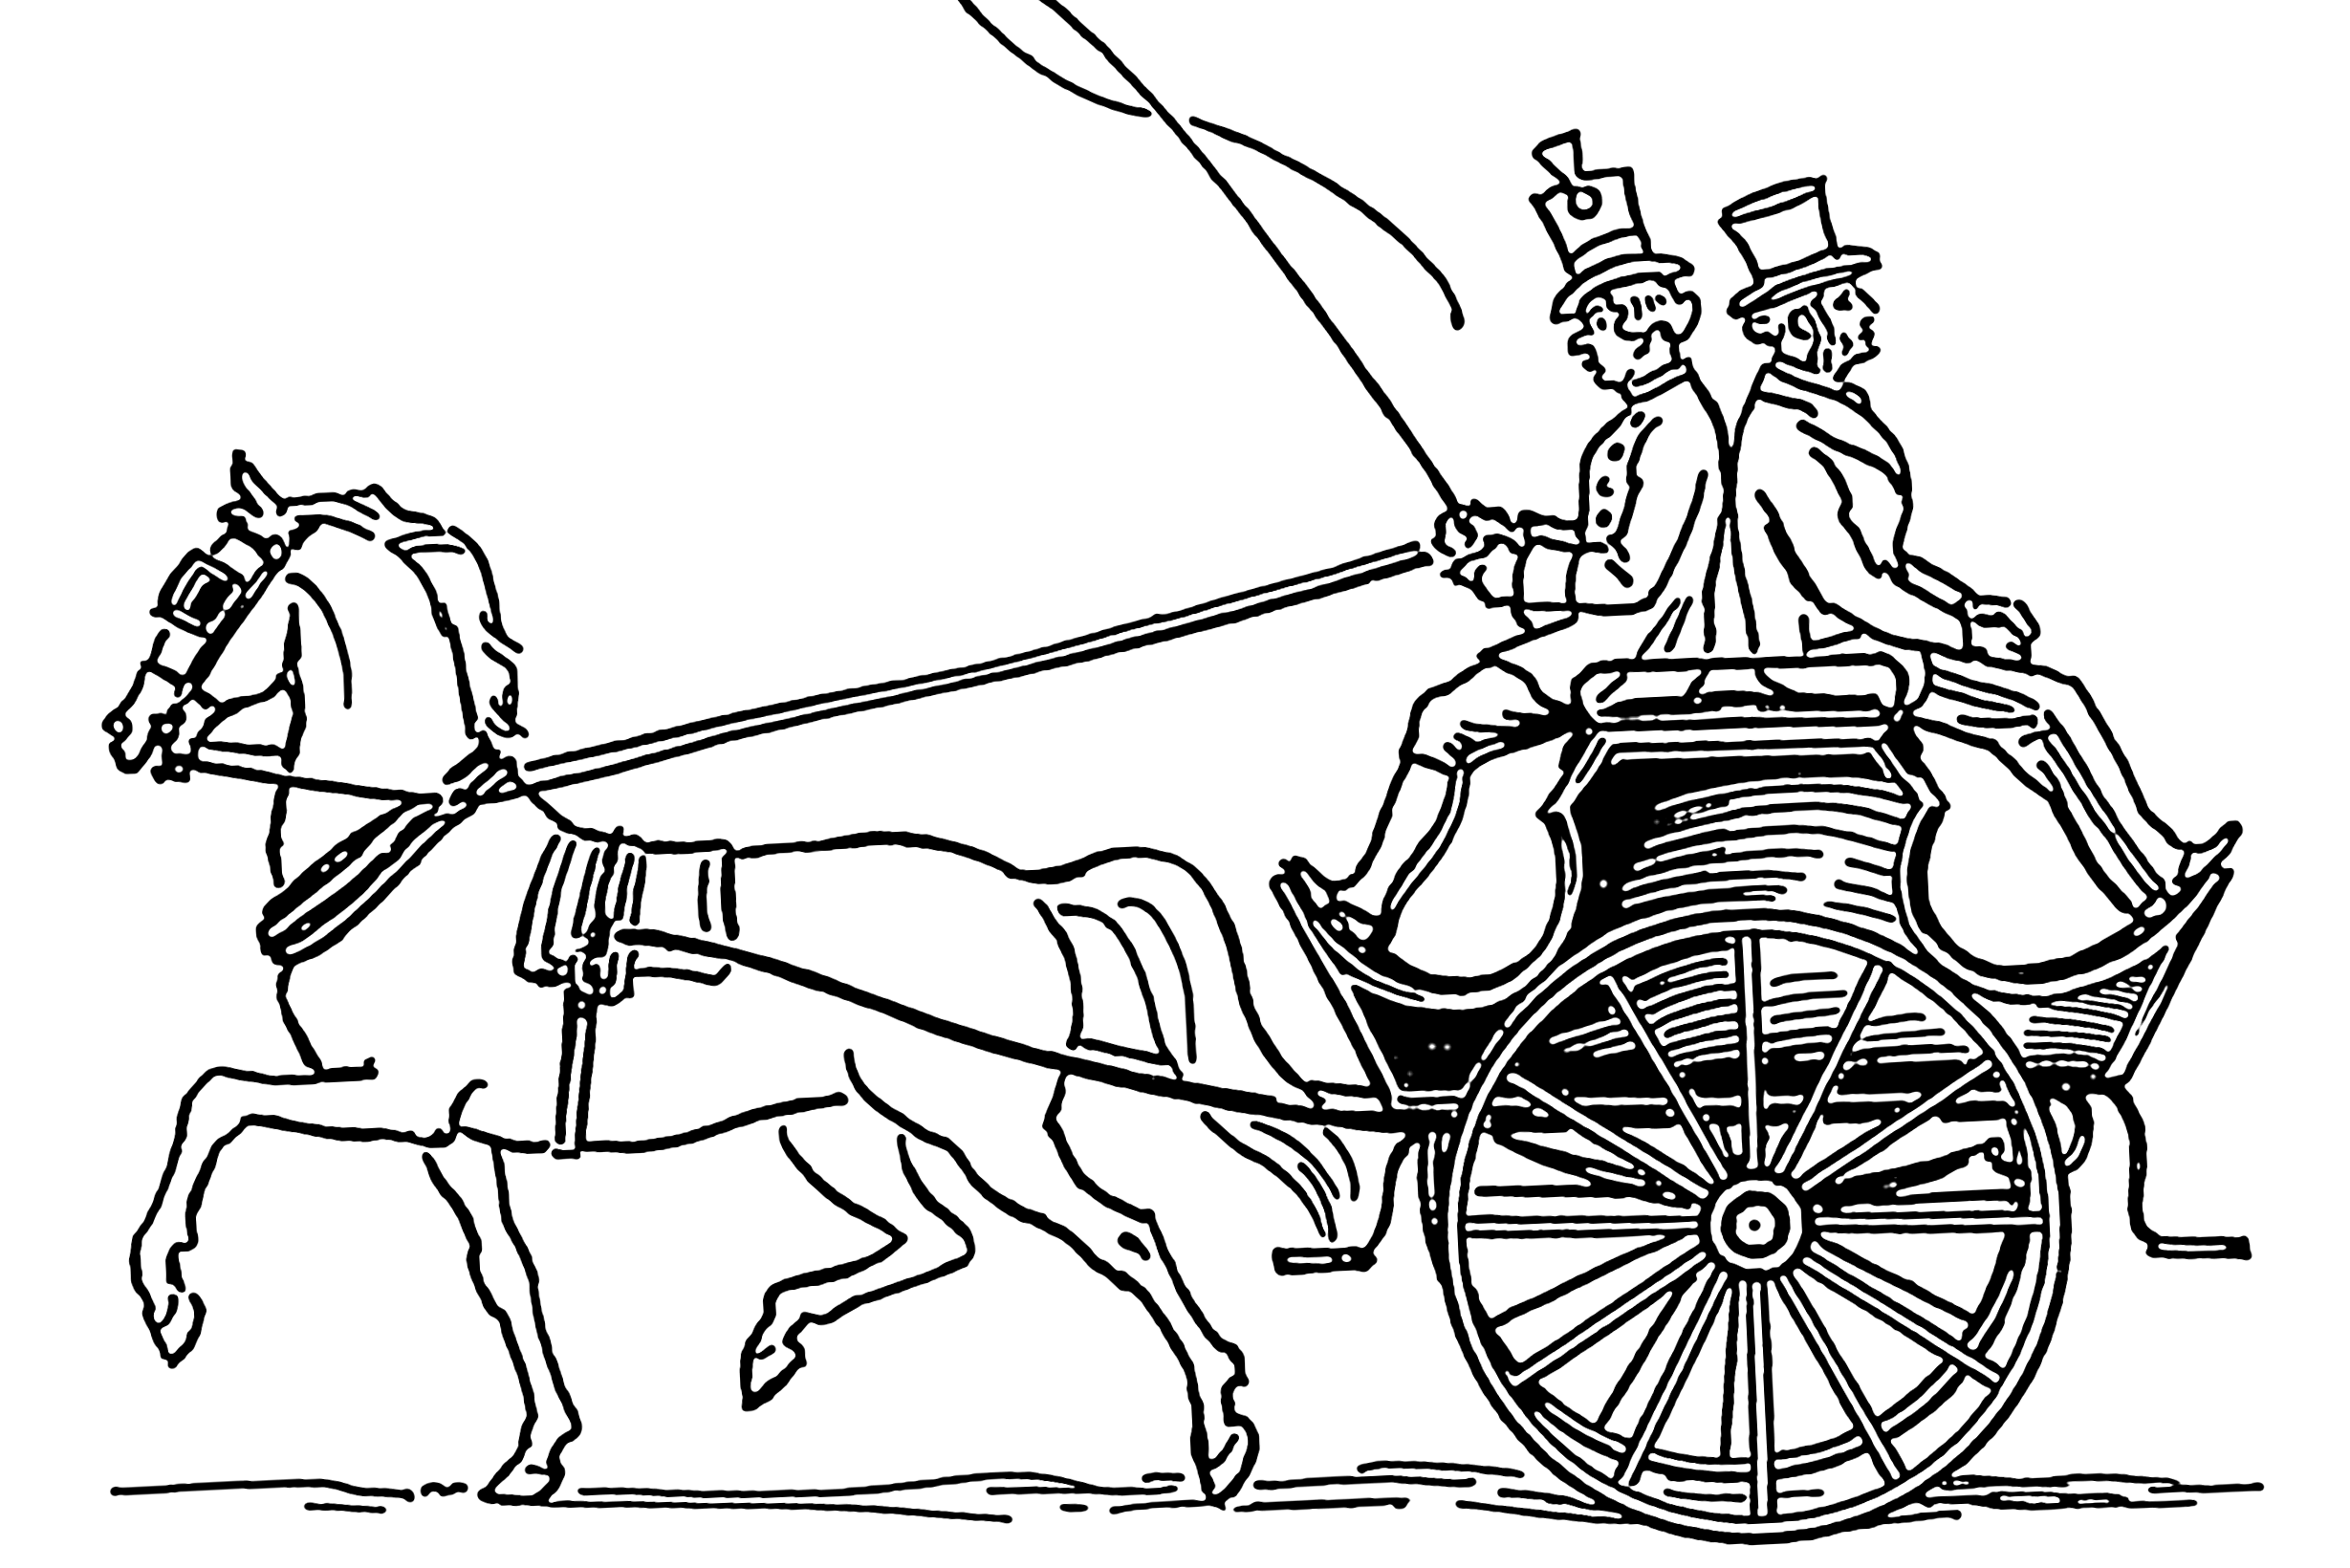 Drawn vehicle simple – Coaches Carriages and Reader